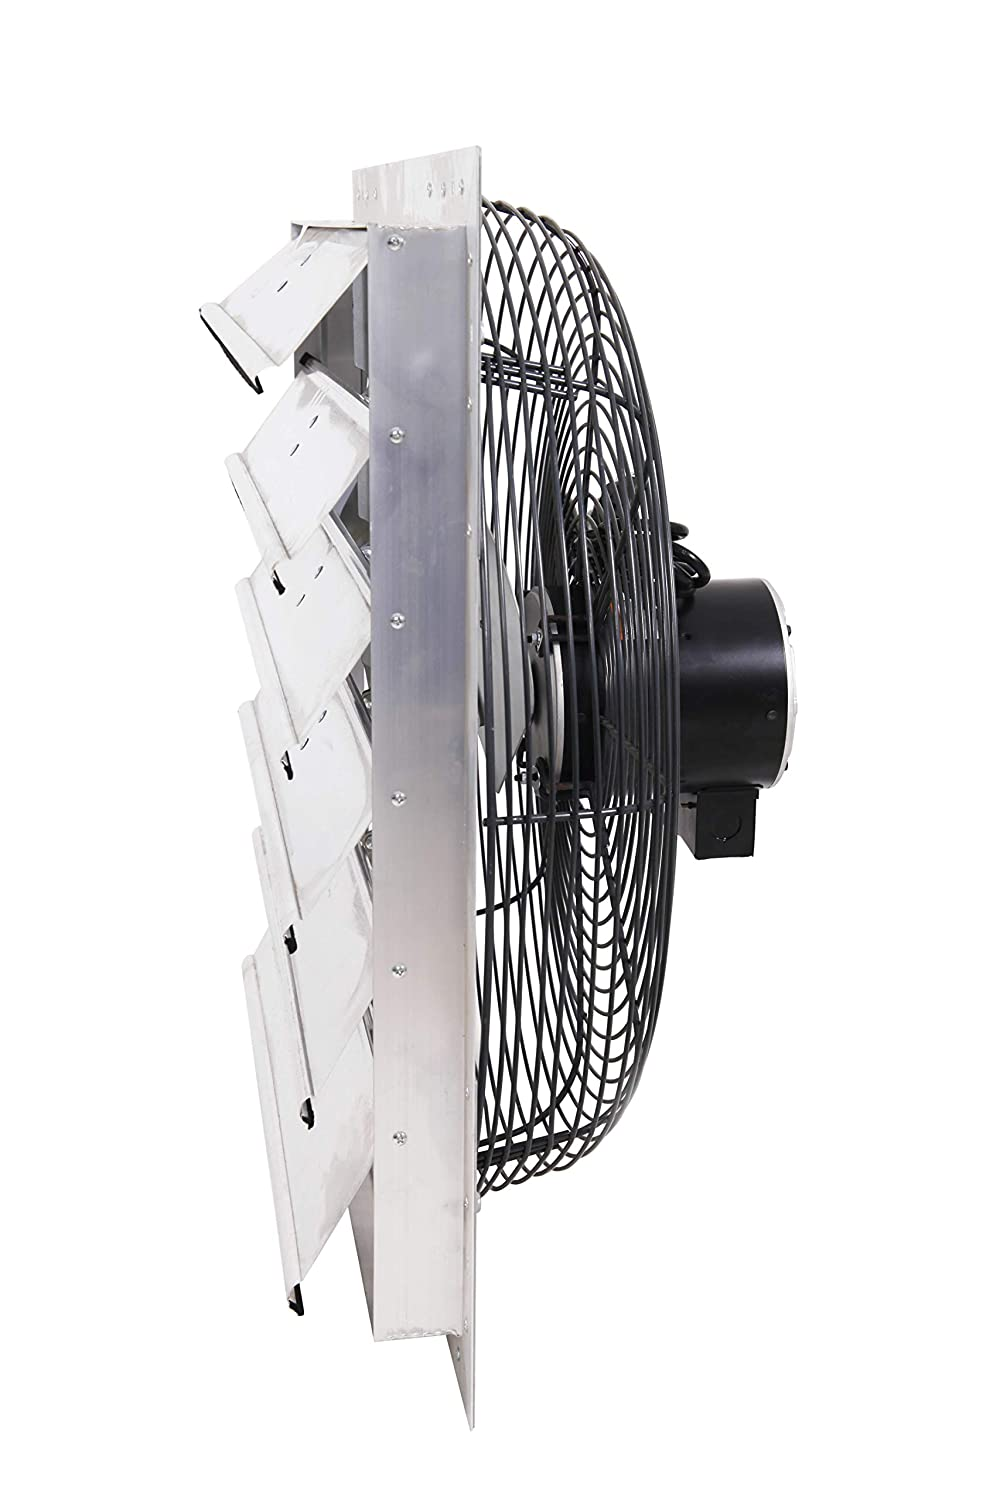 Fanpac S242 Wall-Mounted 2-Speed Shutter Exhaust Fan, 24